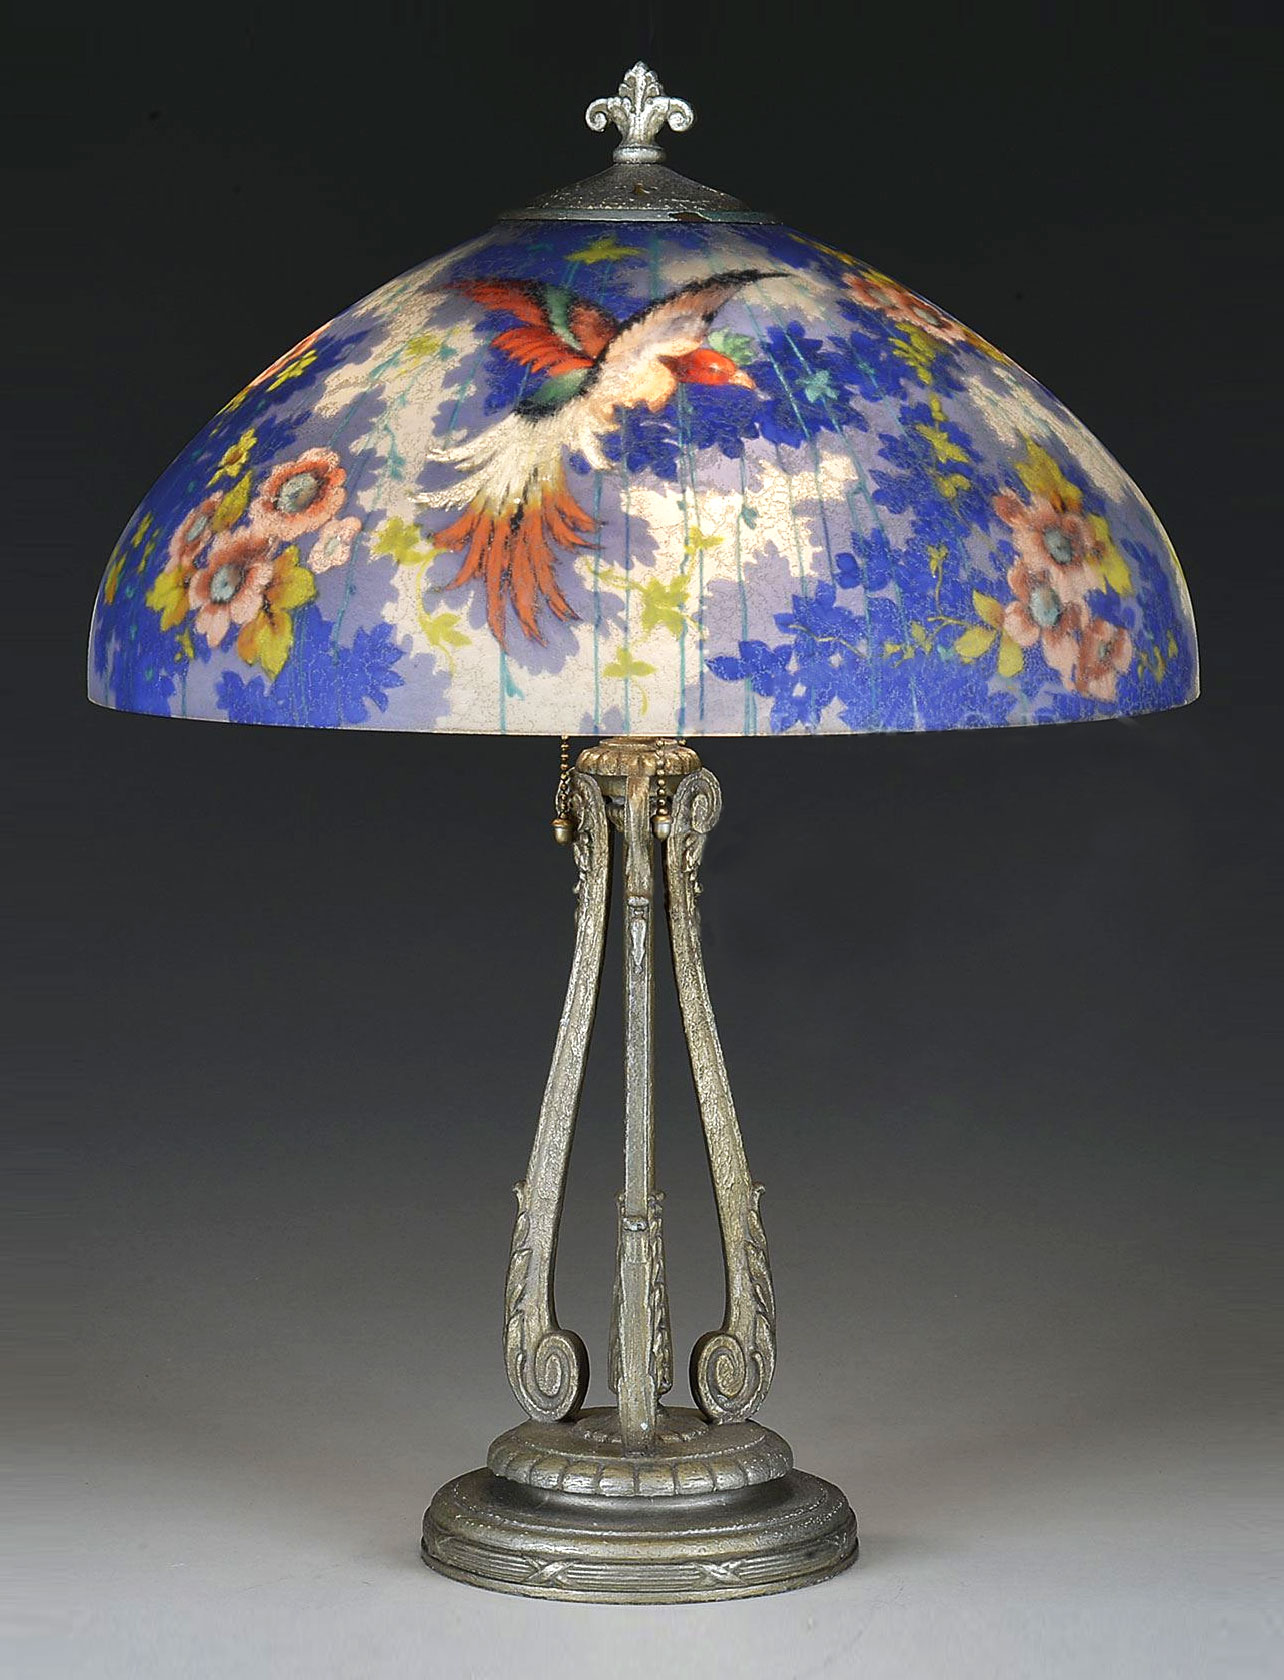 Blue Bird Lamp